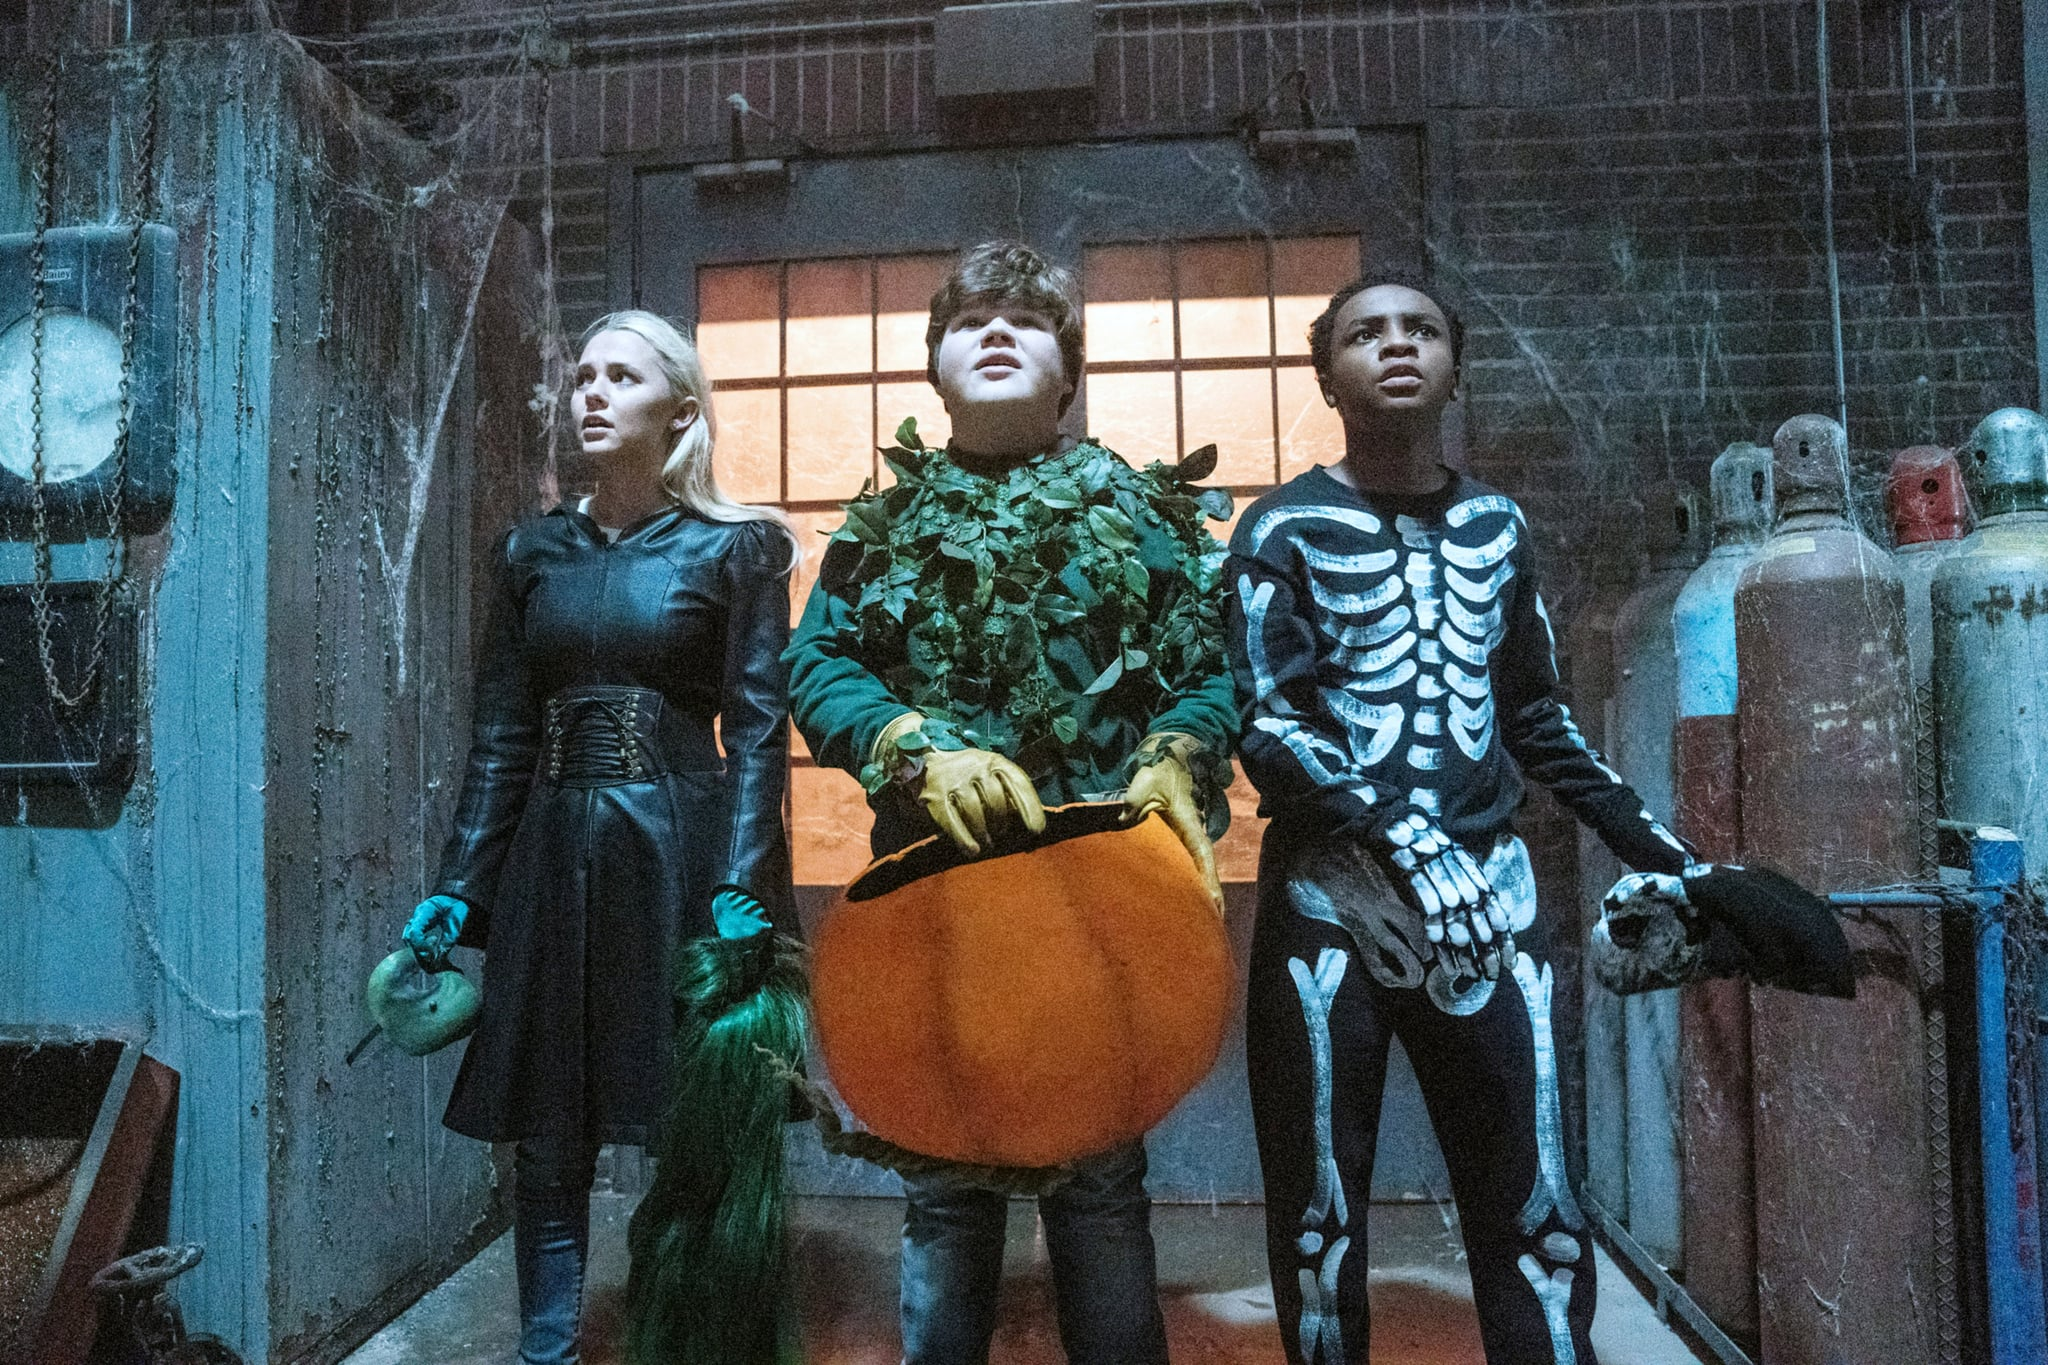 When Can I Stream Halloween 2020 The Best Halloween Movies For Kids on Netflix | 2020 | POPSUGAR Family